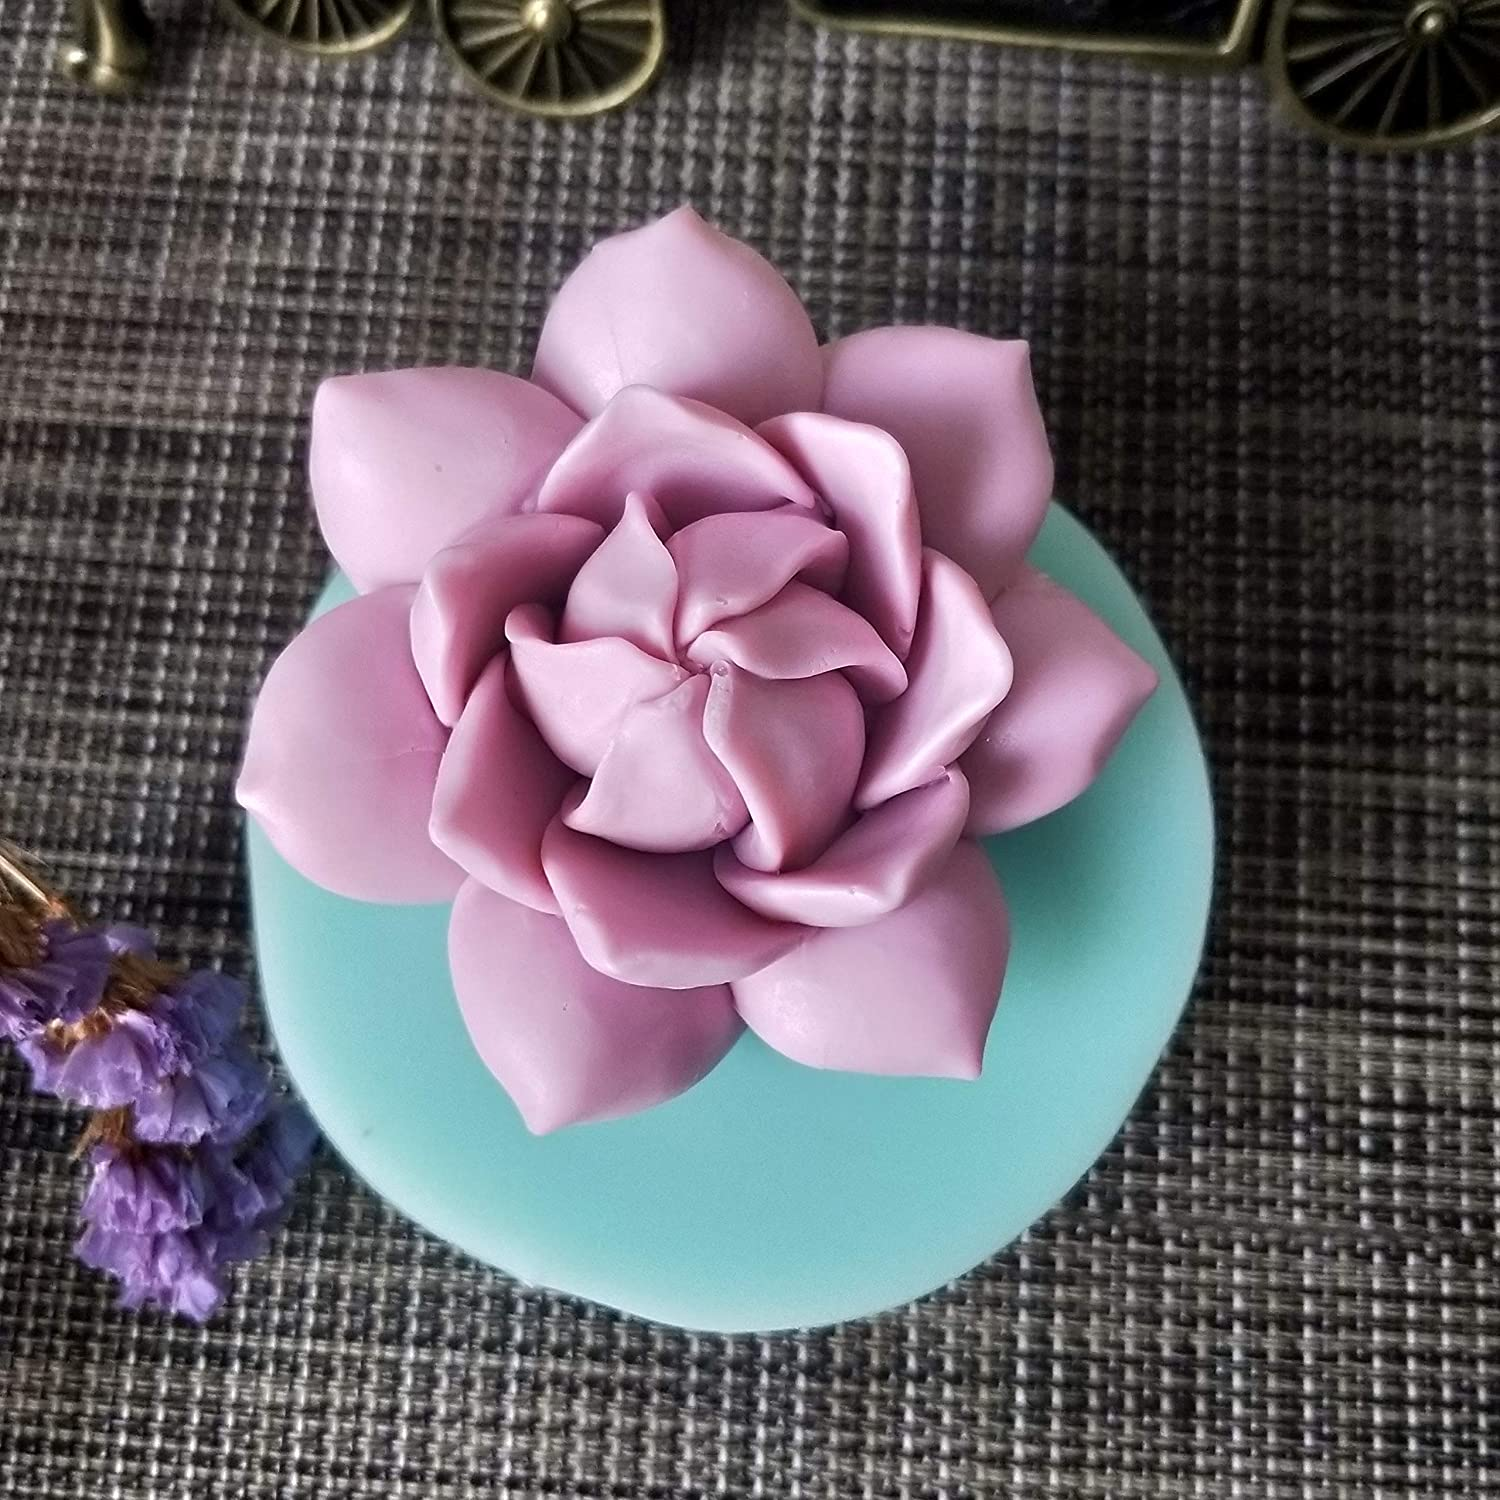 Allforhome Valley Lily Flower 3D Silicone Craft Art Resin Polymer Clay Soap DIY Mould Handmade soap molds Candle Soap Making Mold